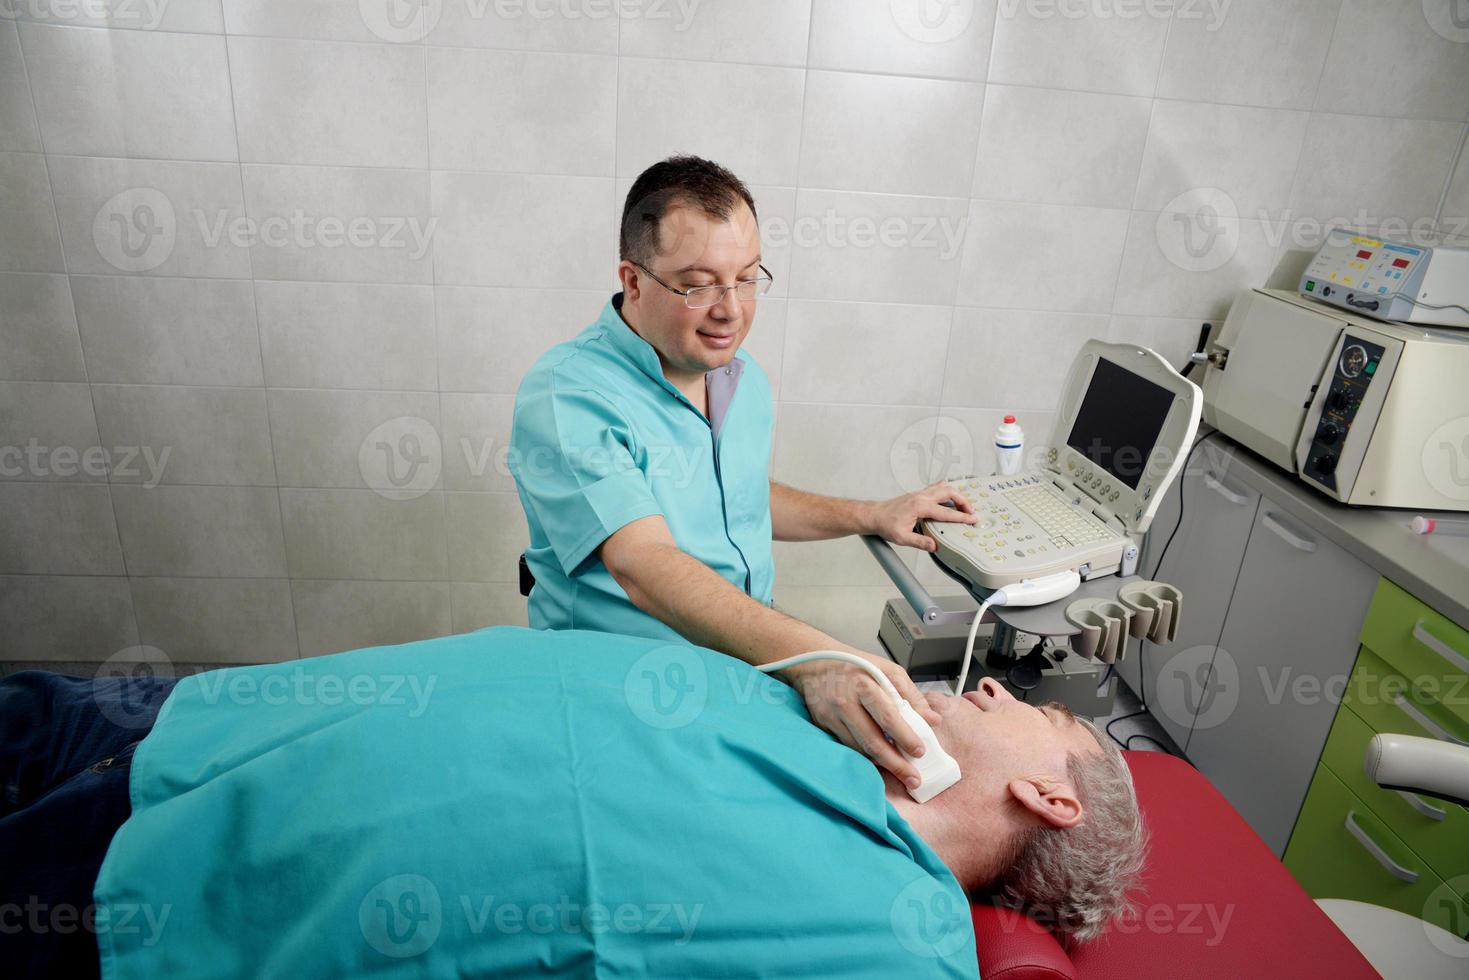 Man getting examination done by a medical professional photo